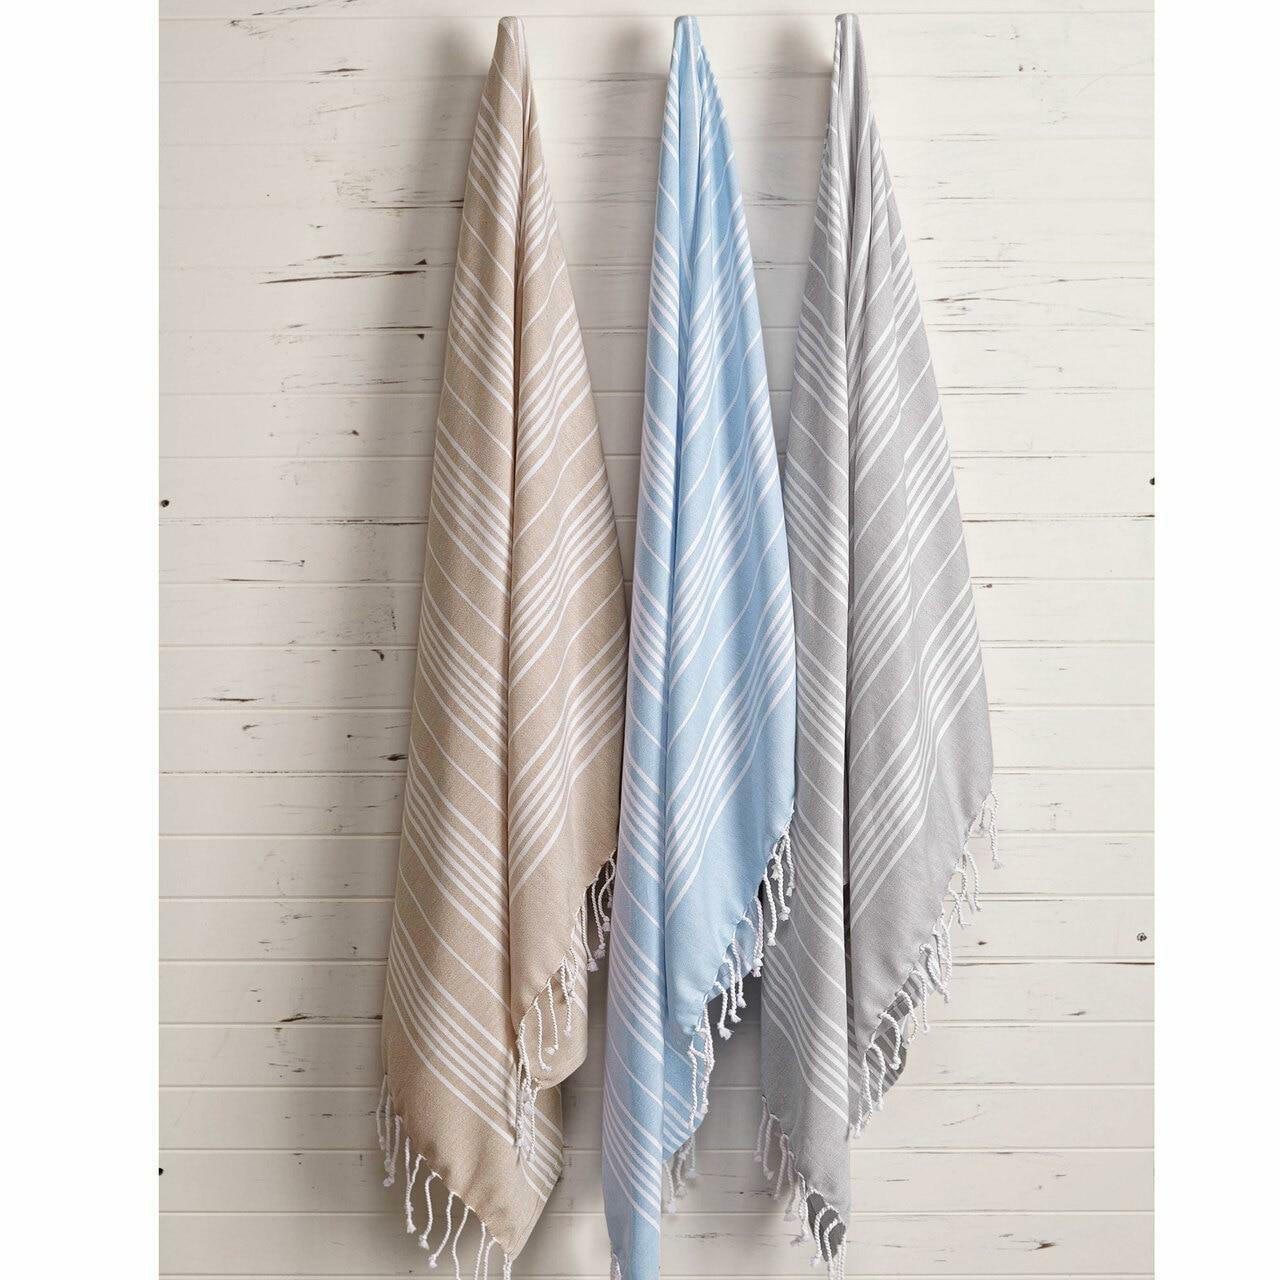 1888 Mills 1888 MILLS or WANDER BOHO BLANKETS or BLUE or40X68 or 100percent RING SPUN COMBED COTTON or 1 DZ PER CASE